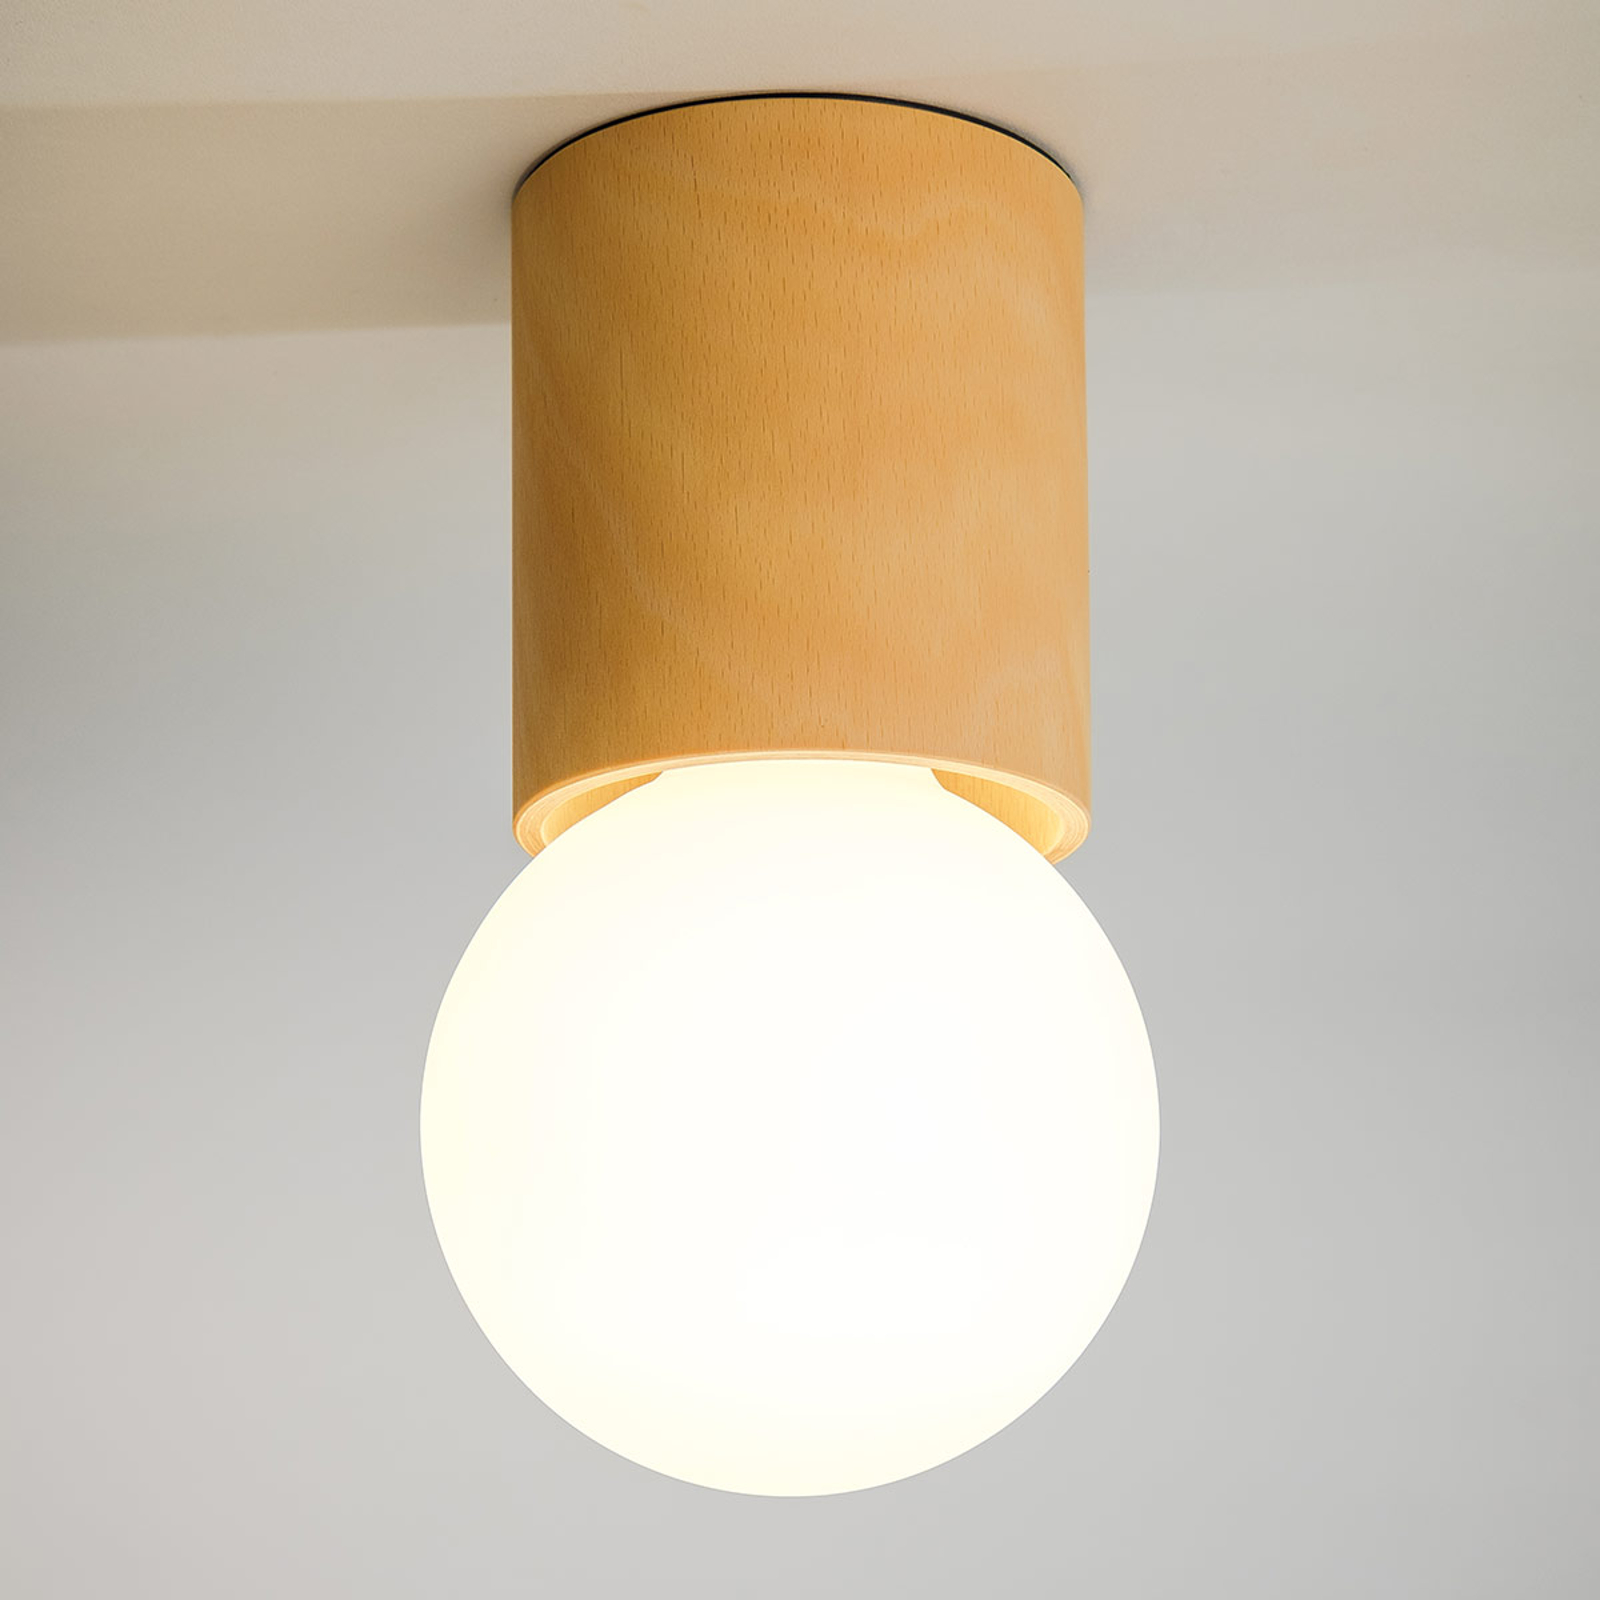 Tondolo ceiling light made of beech wood_2600430_1